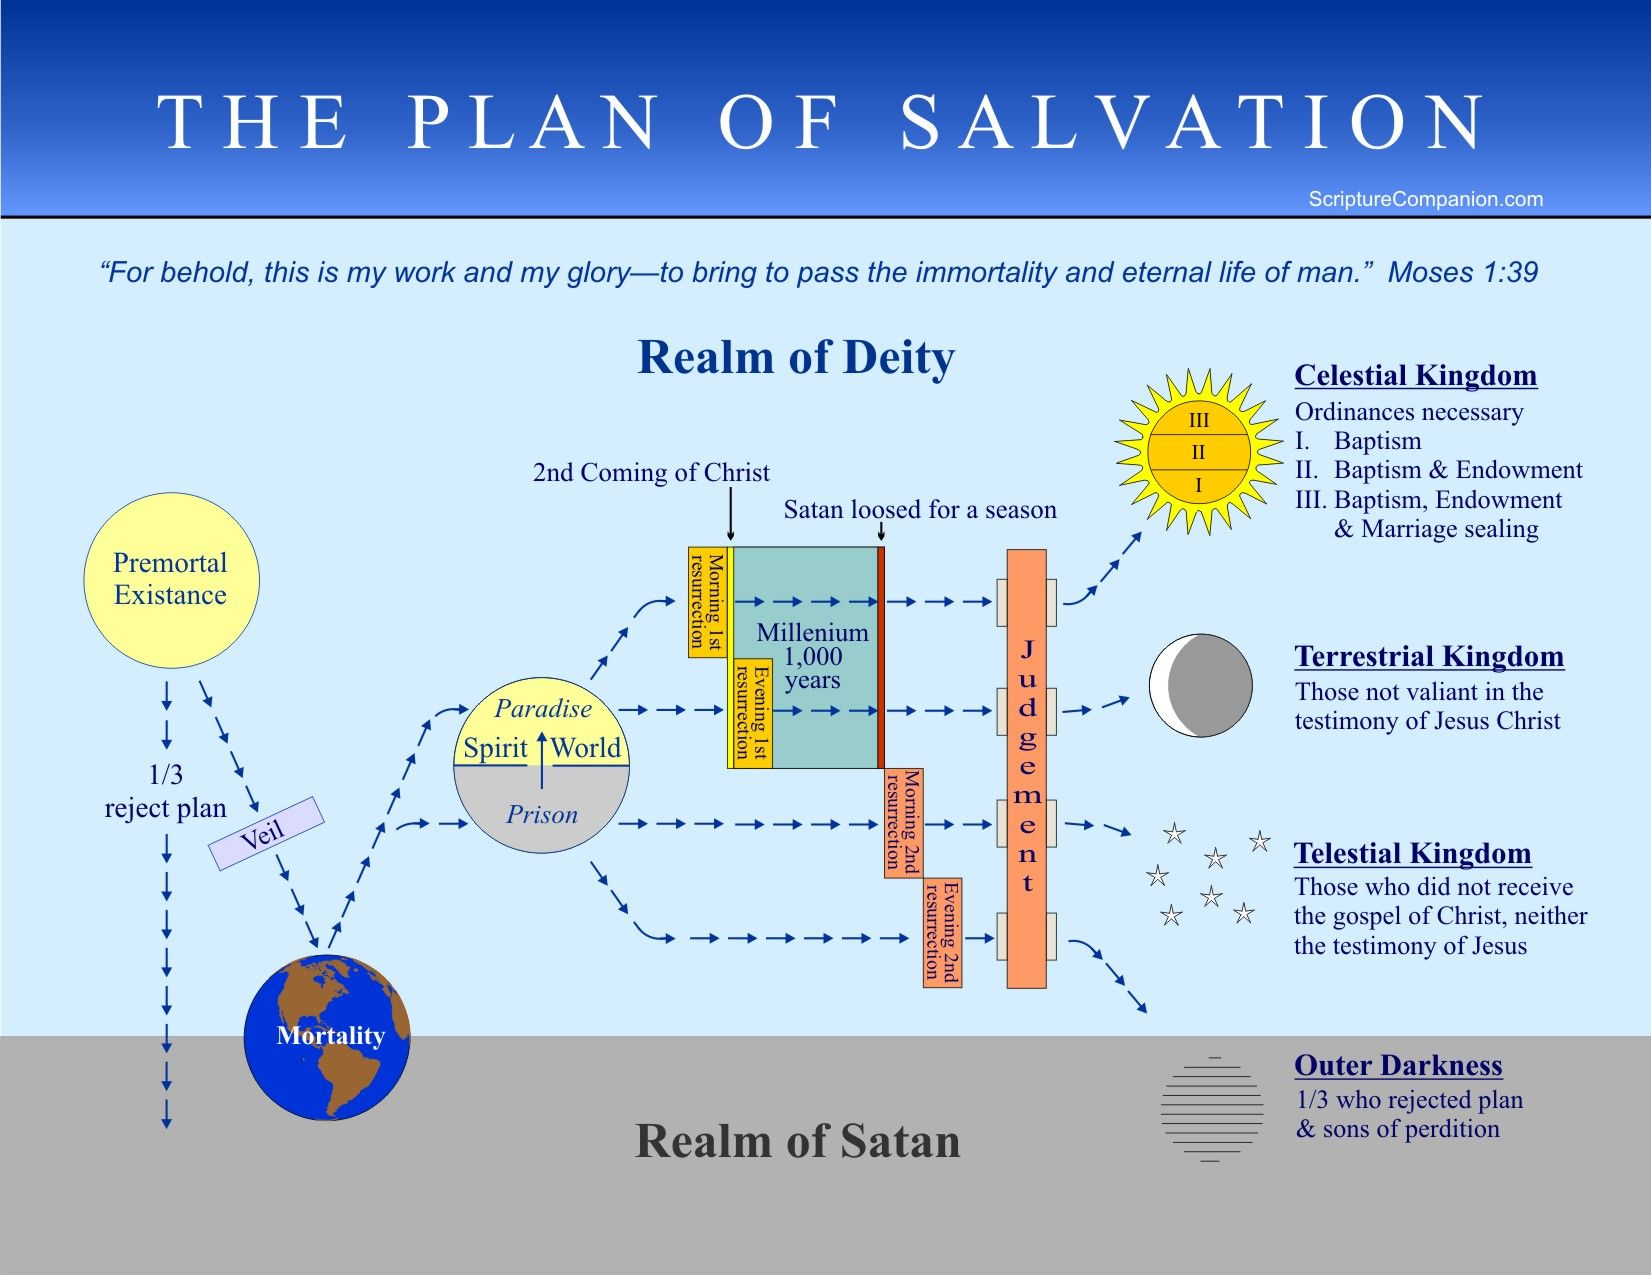 What Hens To Our Spirits Bos When We Plan Of Salvation Map With Scriptures Printable By Scripture Companion